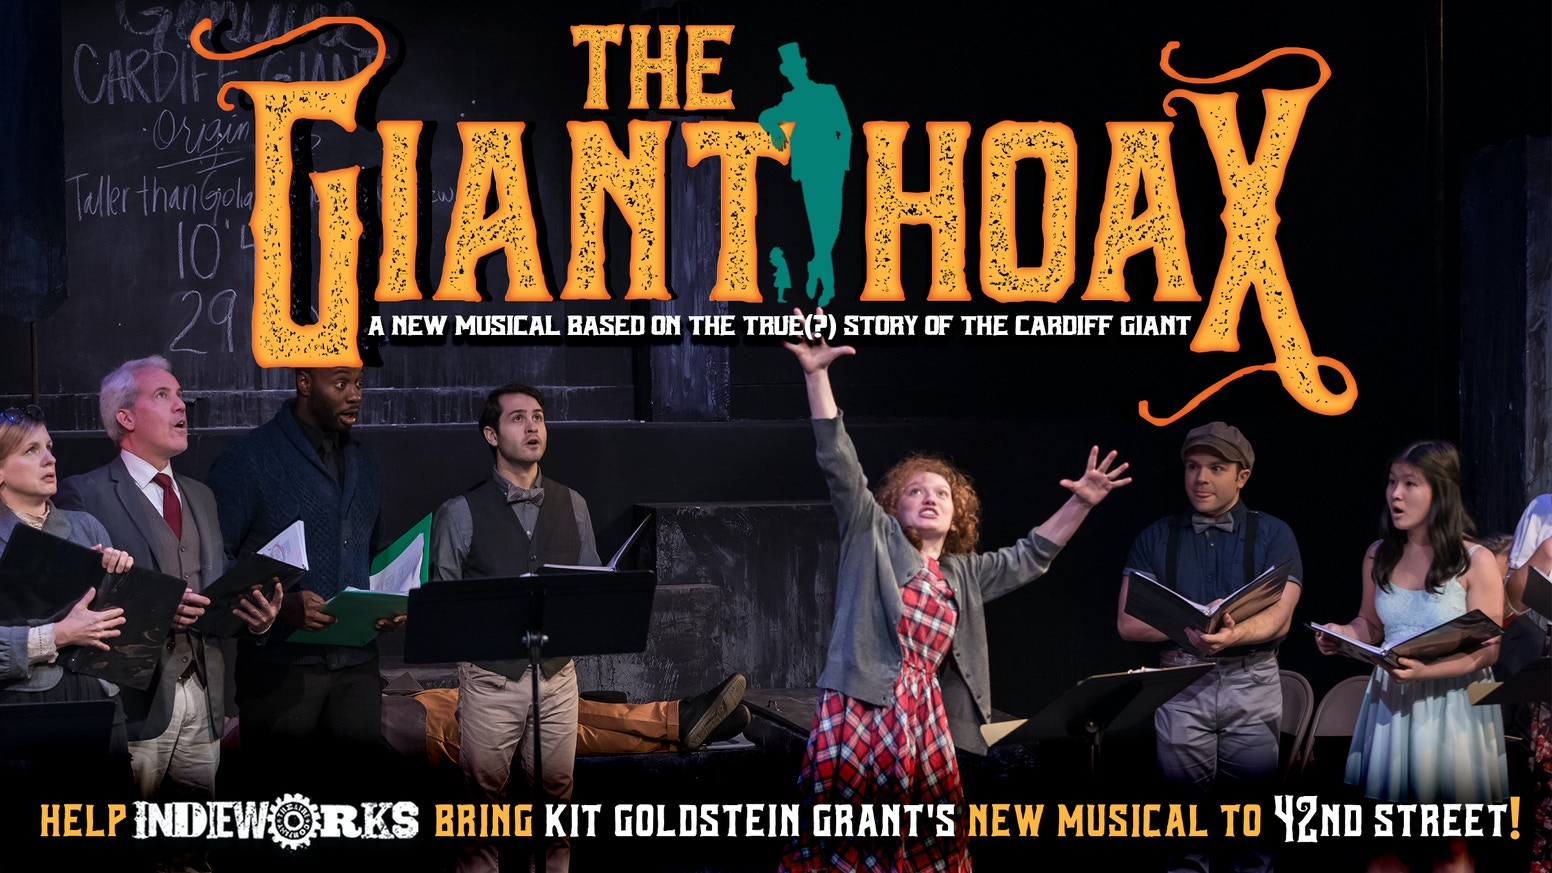 IndieWorks' first main stage production of Kit Goldstein Grant's imaginative new musical comes to 42nd Street in New York this fall!